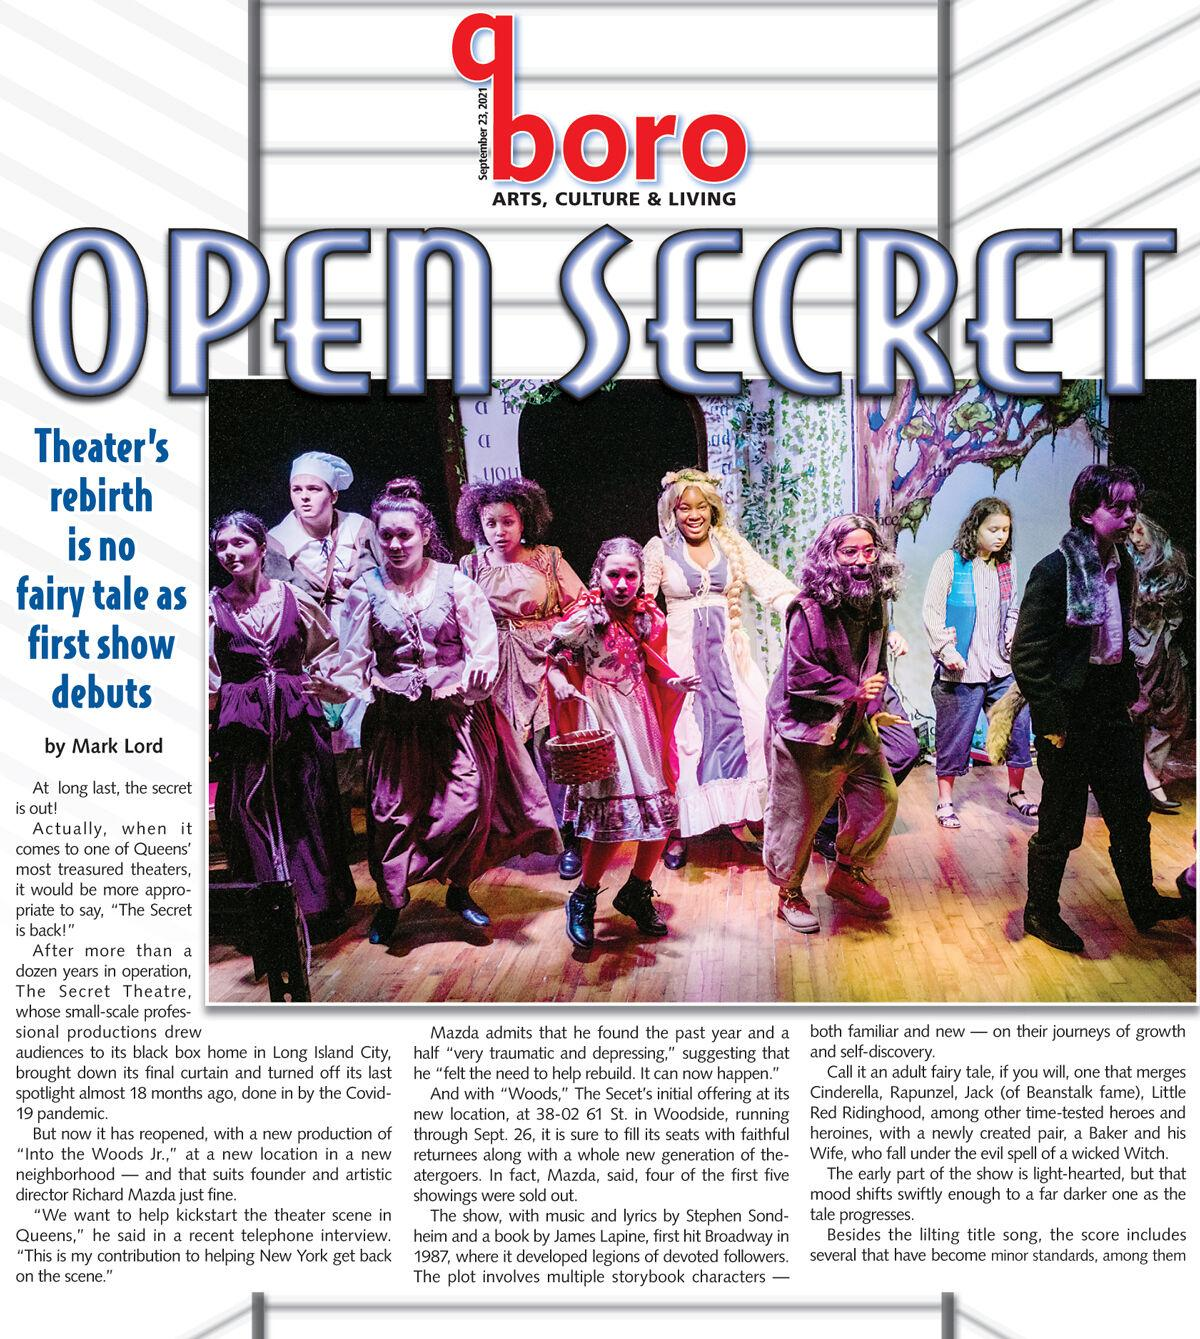 The Secret goes 'Into the Woods,' and into Woodside 1